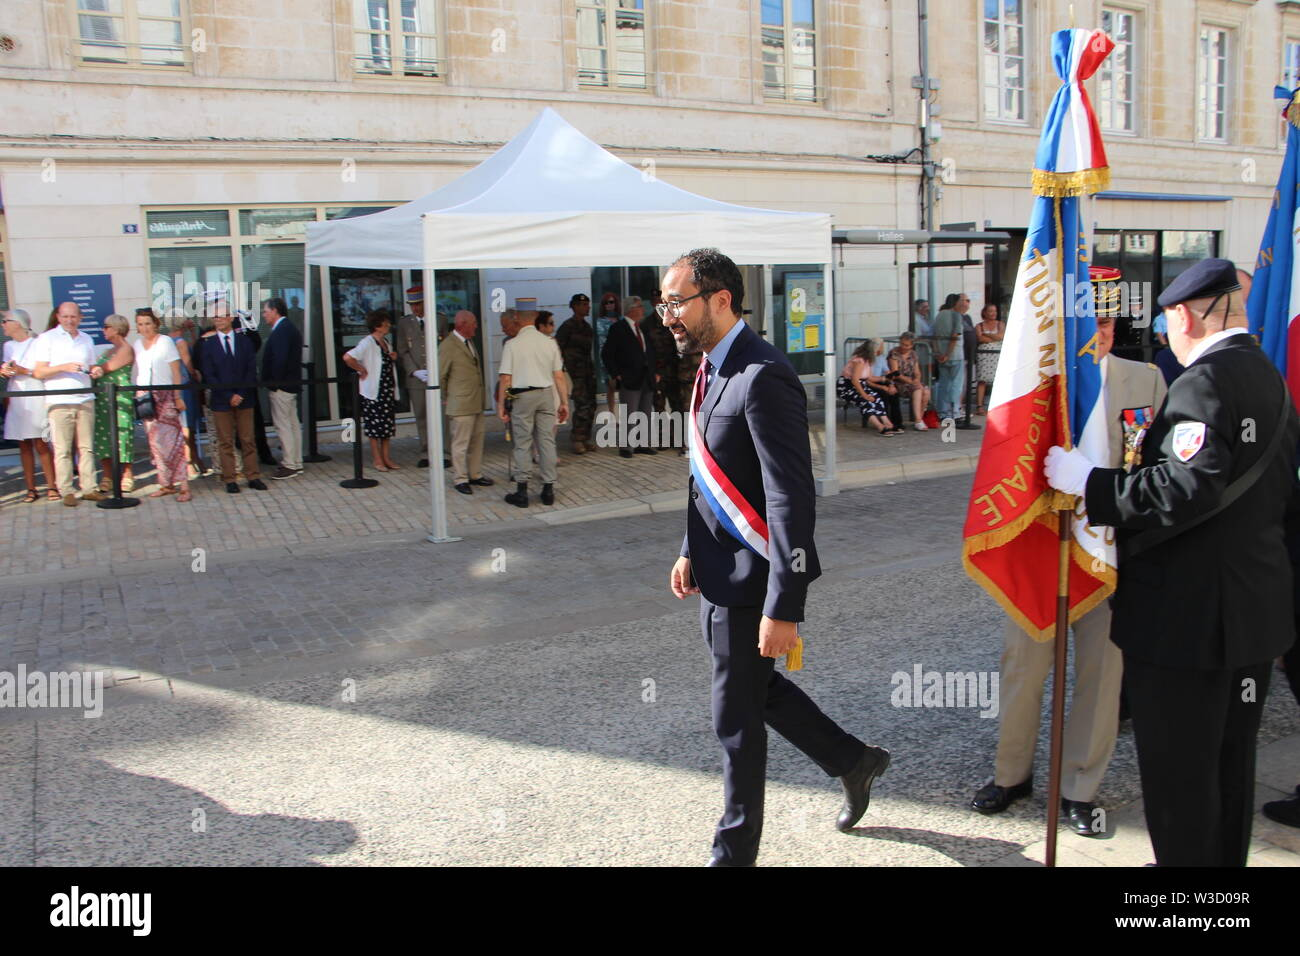 Celebration of National  military festival on July 14 th 2019 in Niort Stock Photo